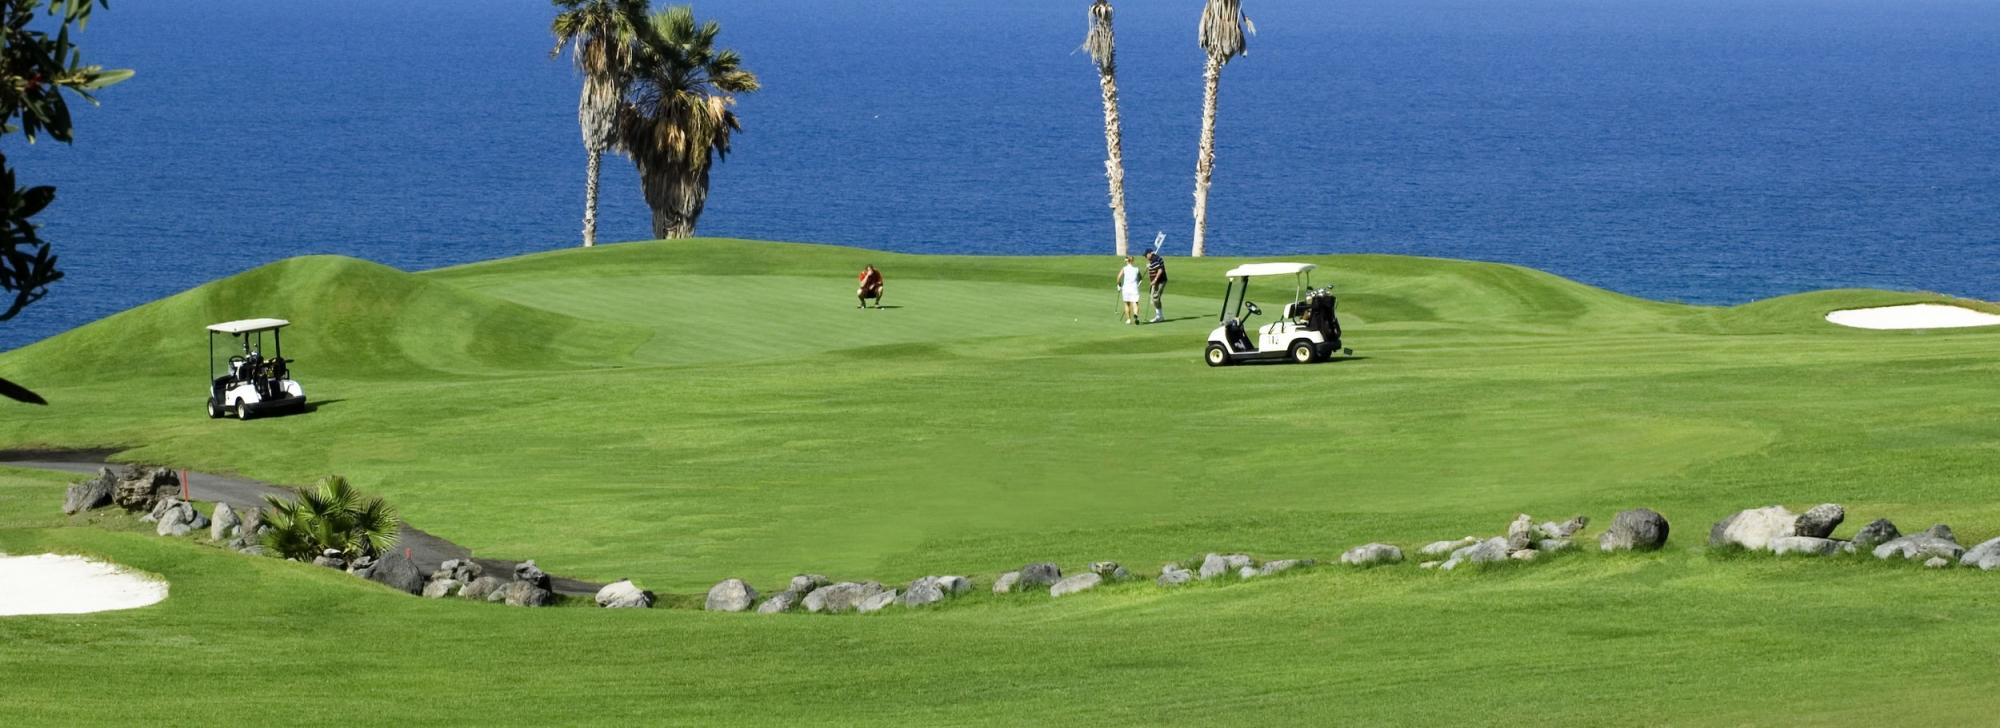 The Costa Adeje Golf Course's lovely golf course in marvelous Tenerife.